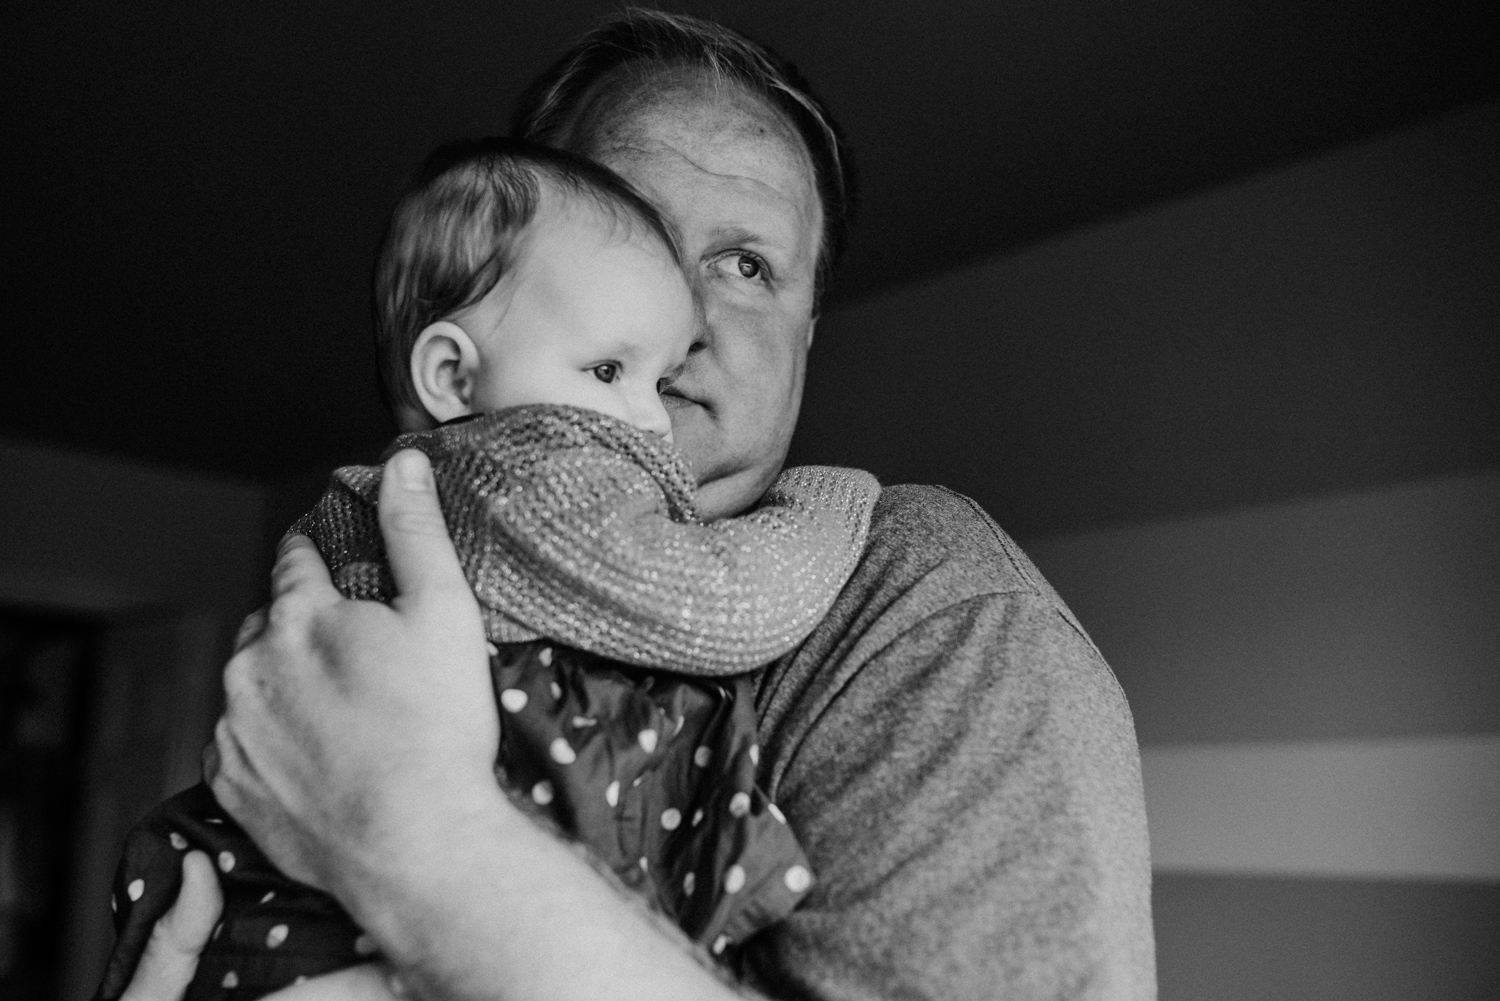 Dad hugging his baby looking out the window.